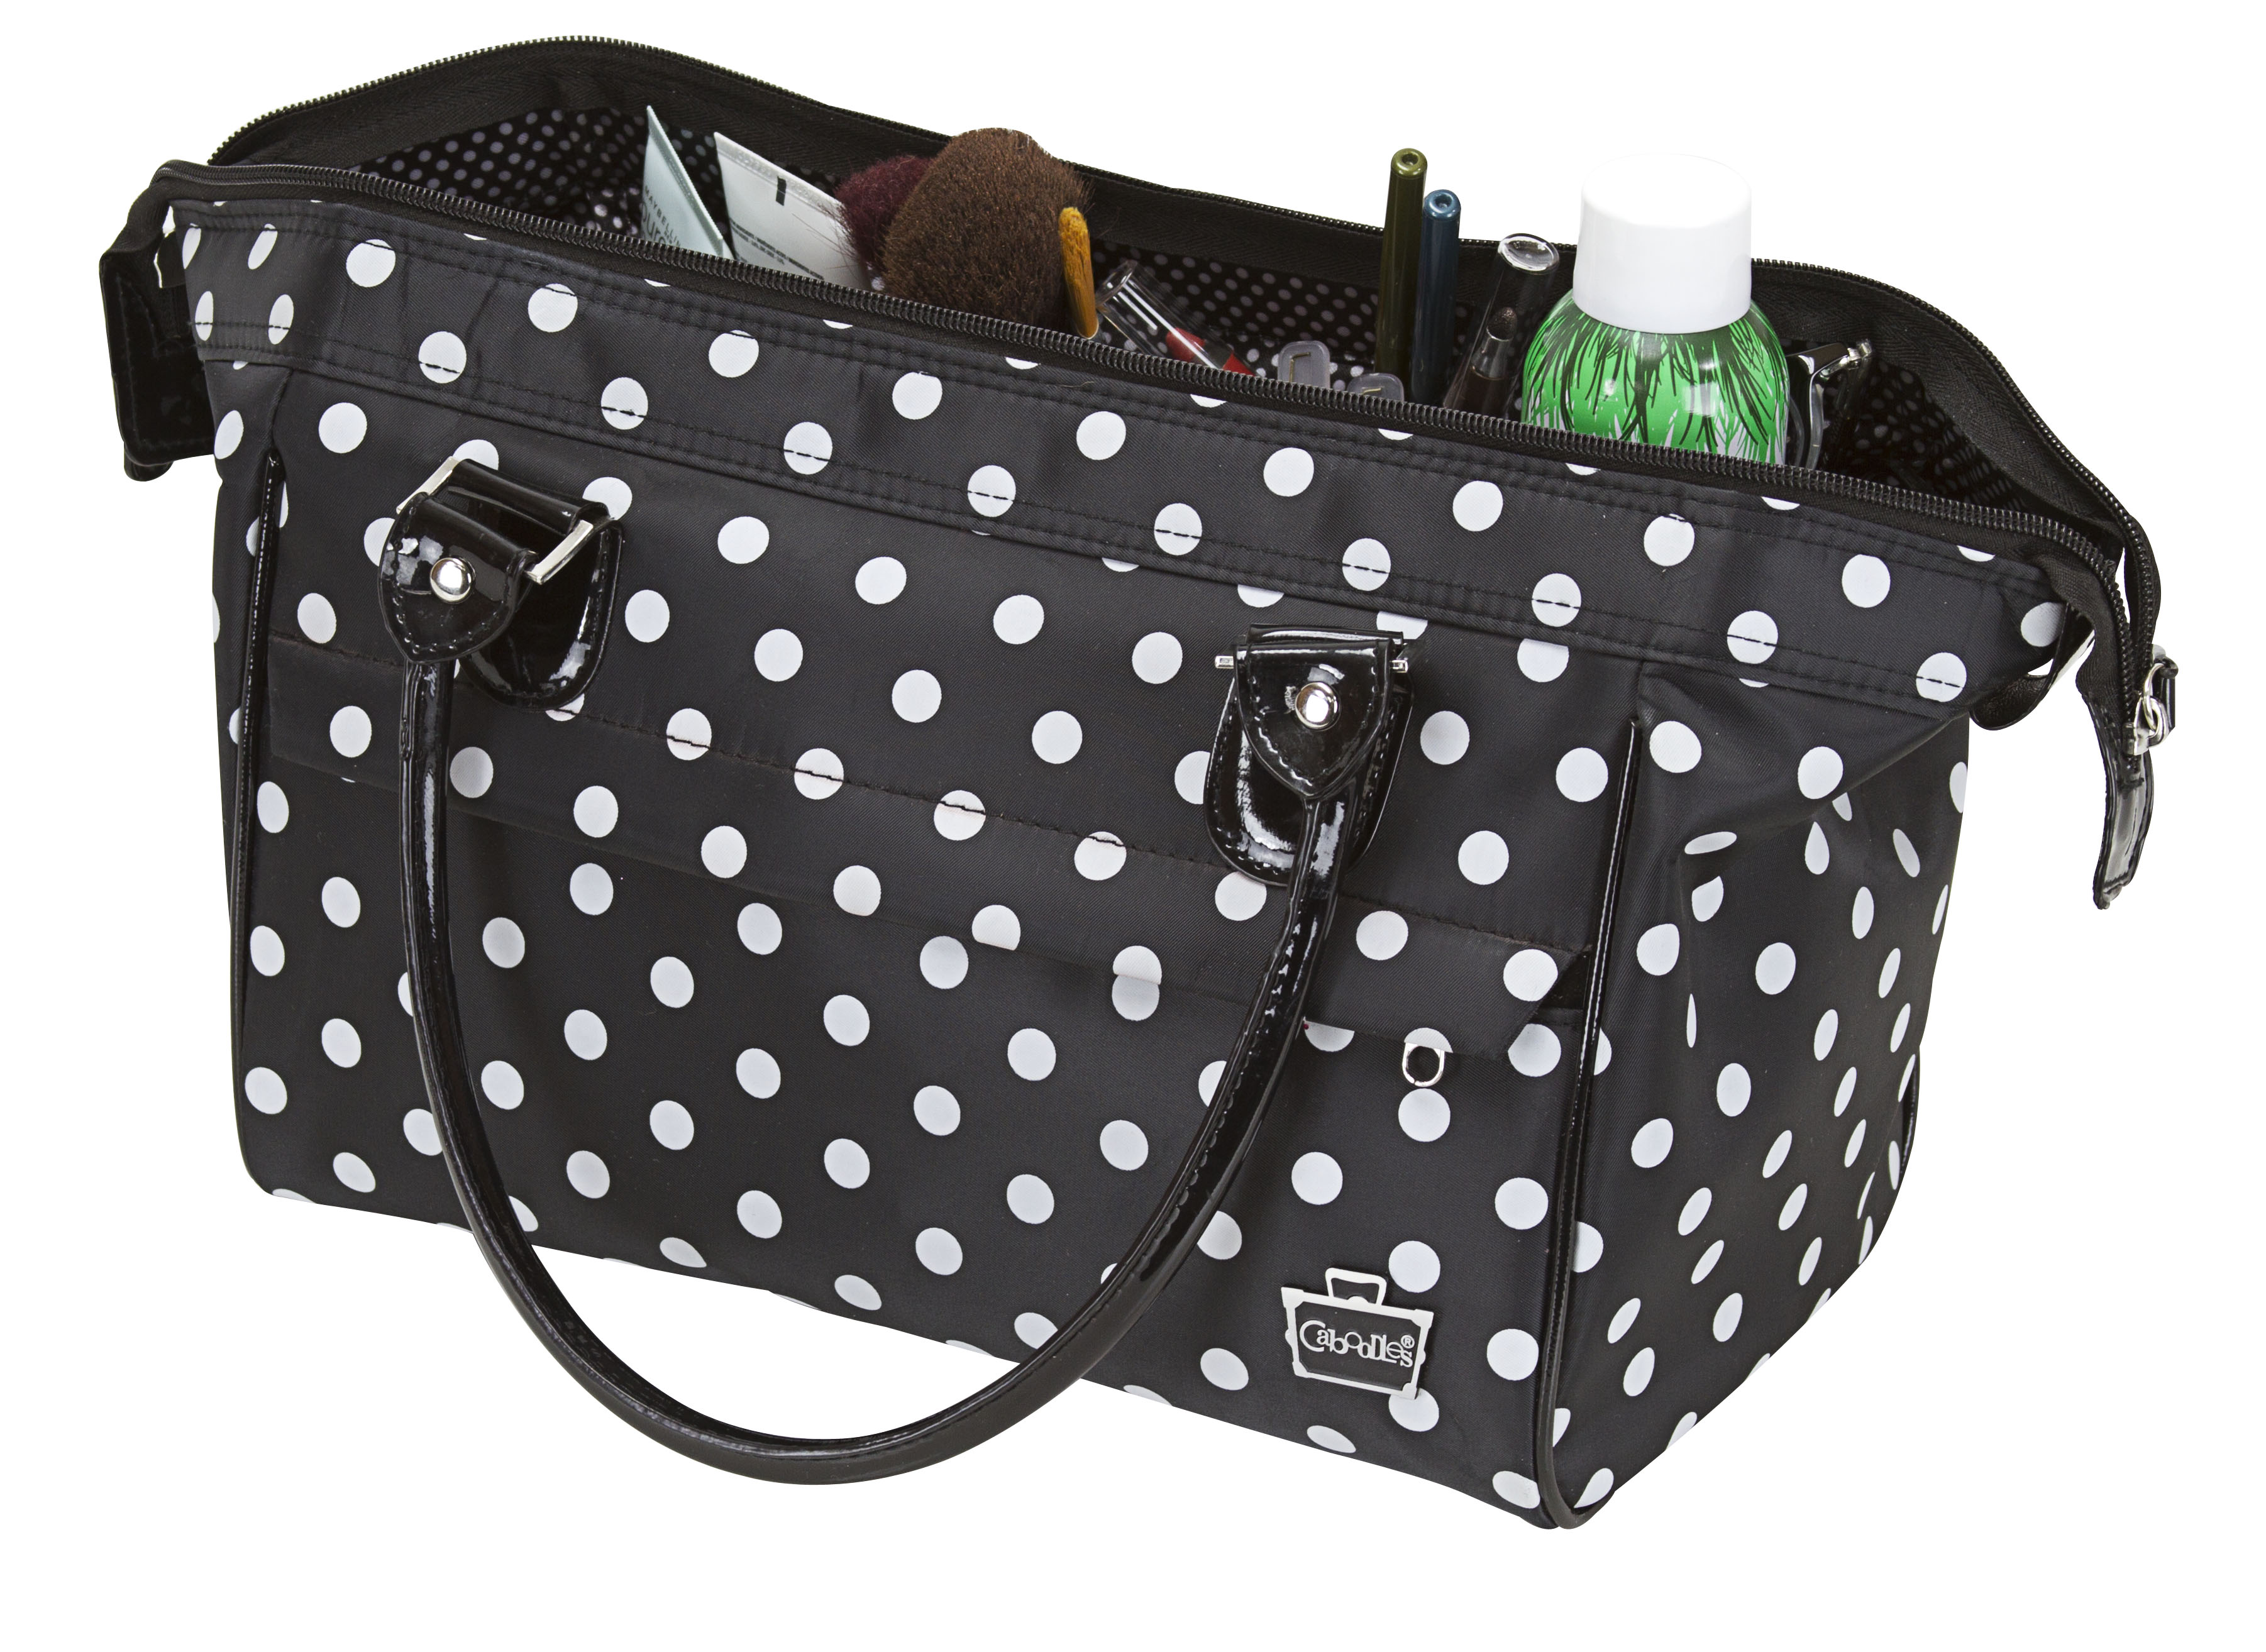 Envy It Bag Open Front, Caboodles